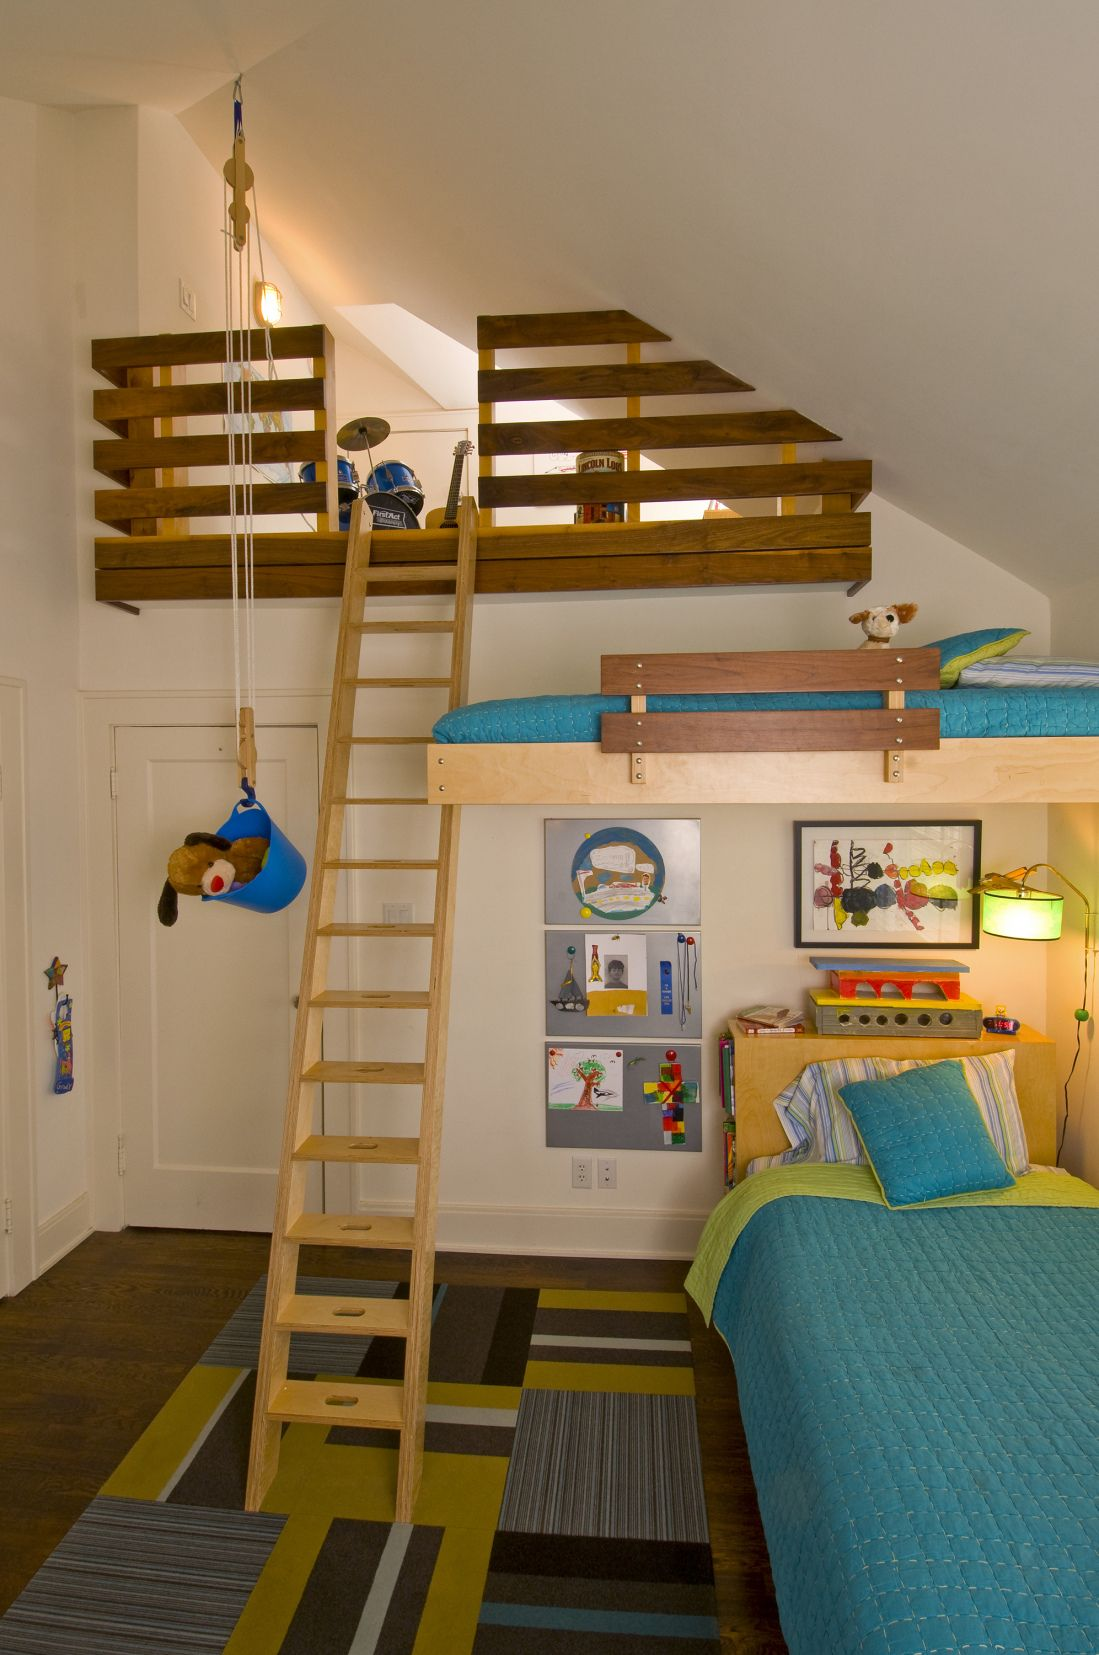 55 Cool Things For Kids Rooms Ideas To Decorate Bedroom Check More At Http Davidhyounglaw Com Roo Loft Beds Home